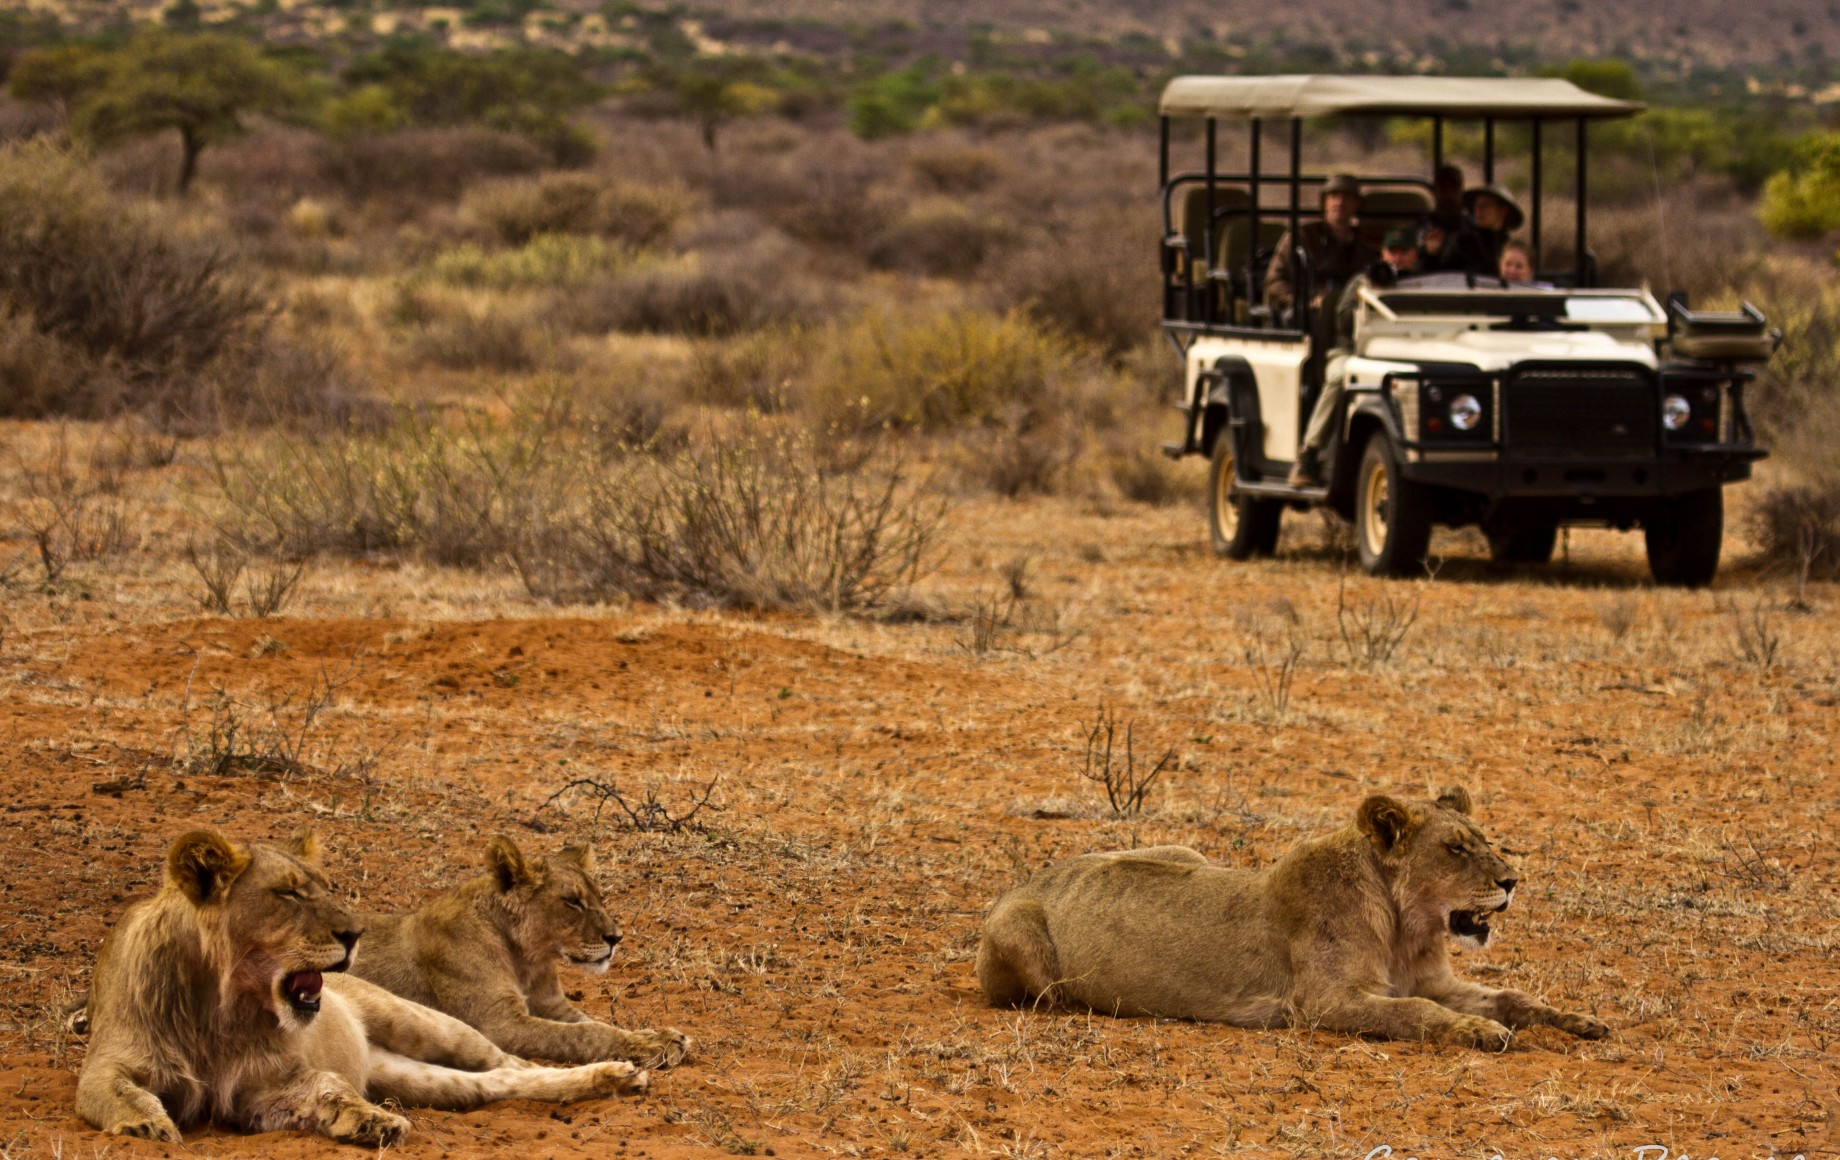 two lions with a safari cart in the background